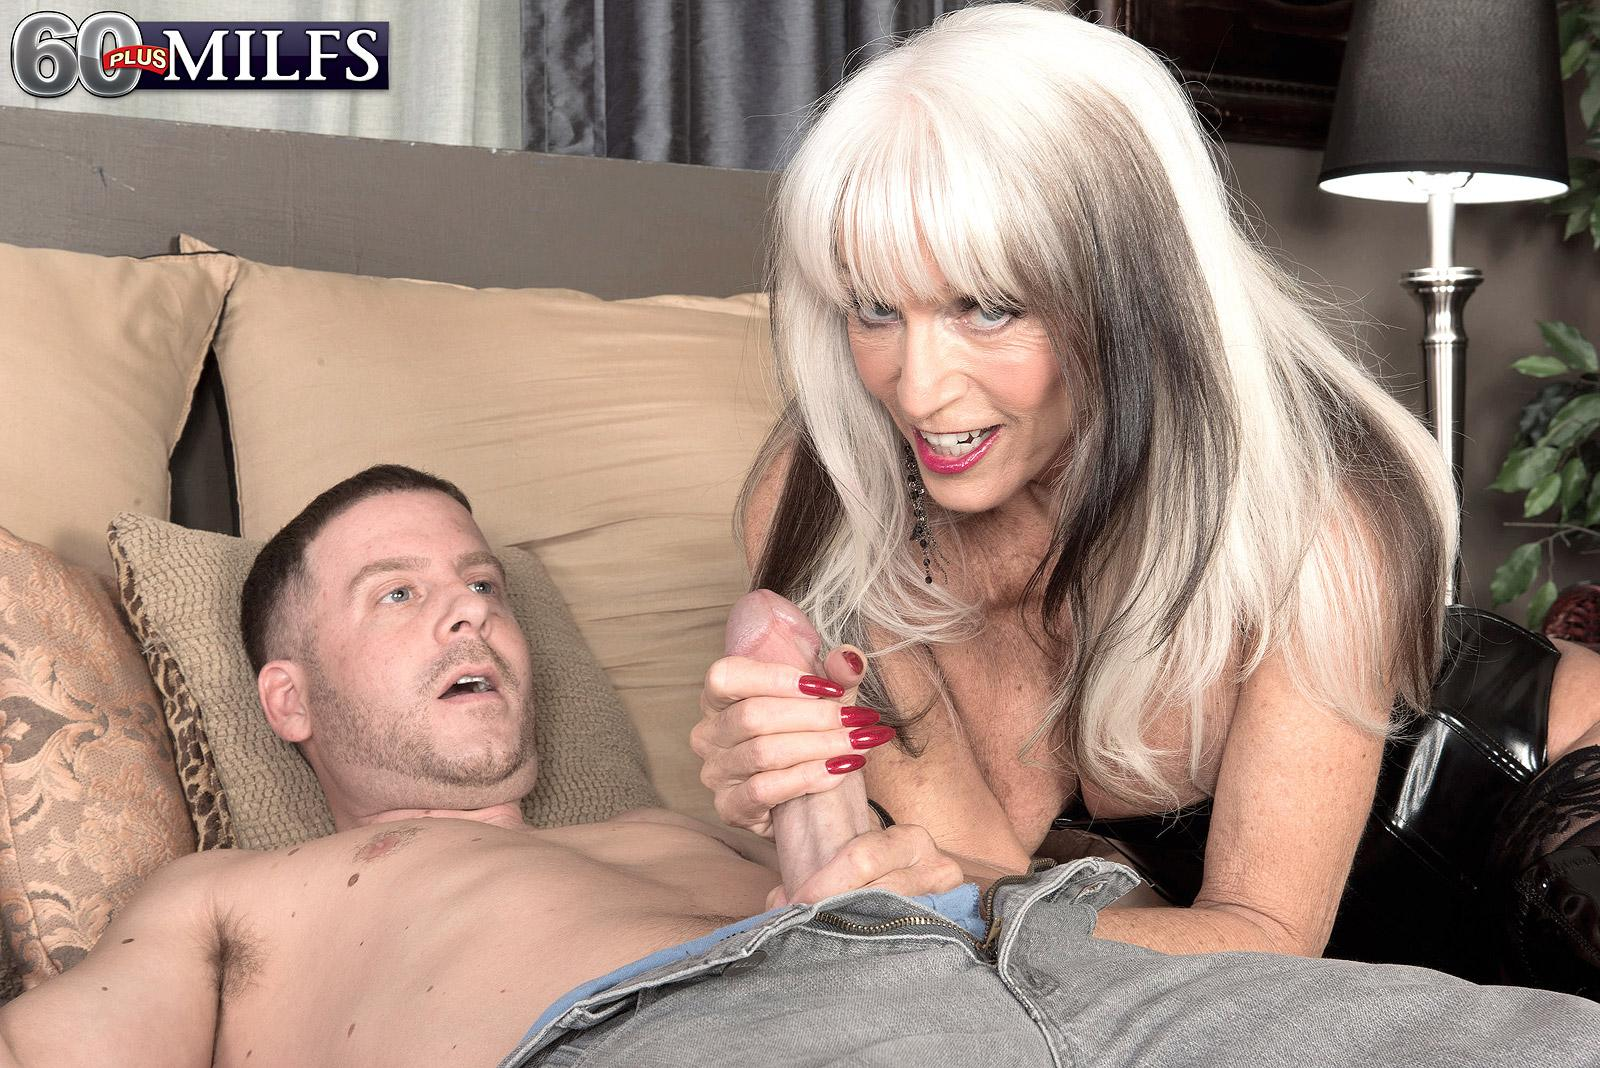 Hefty titted 60 plus MILF Sally D'Angelo jacks a boner in latex boots and black corset